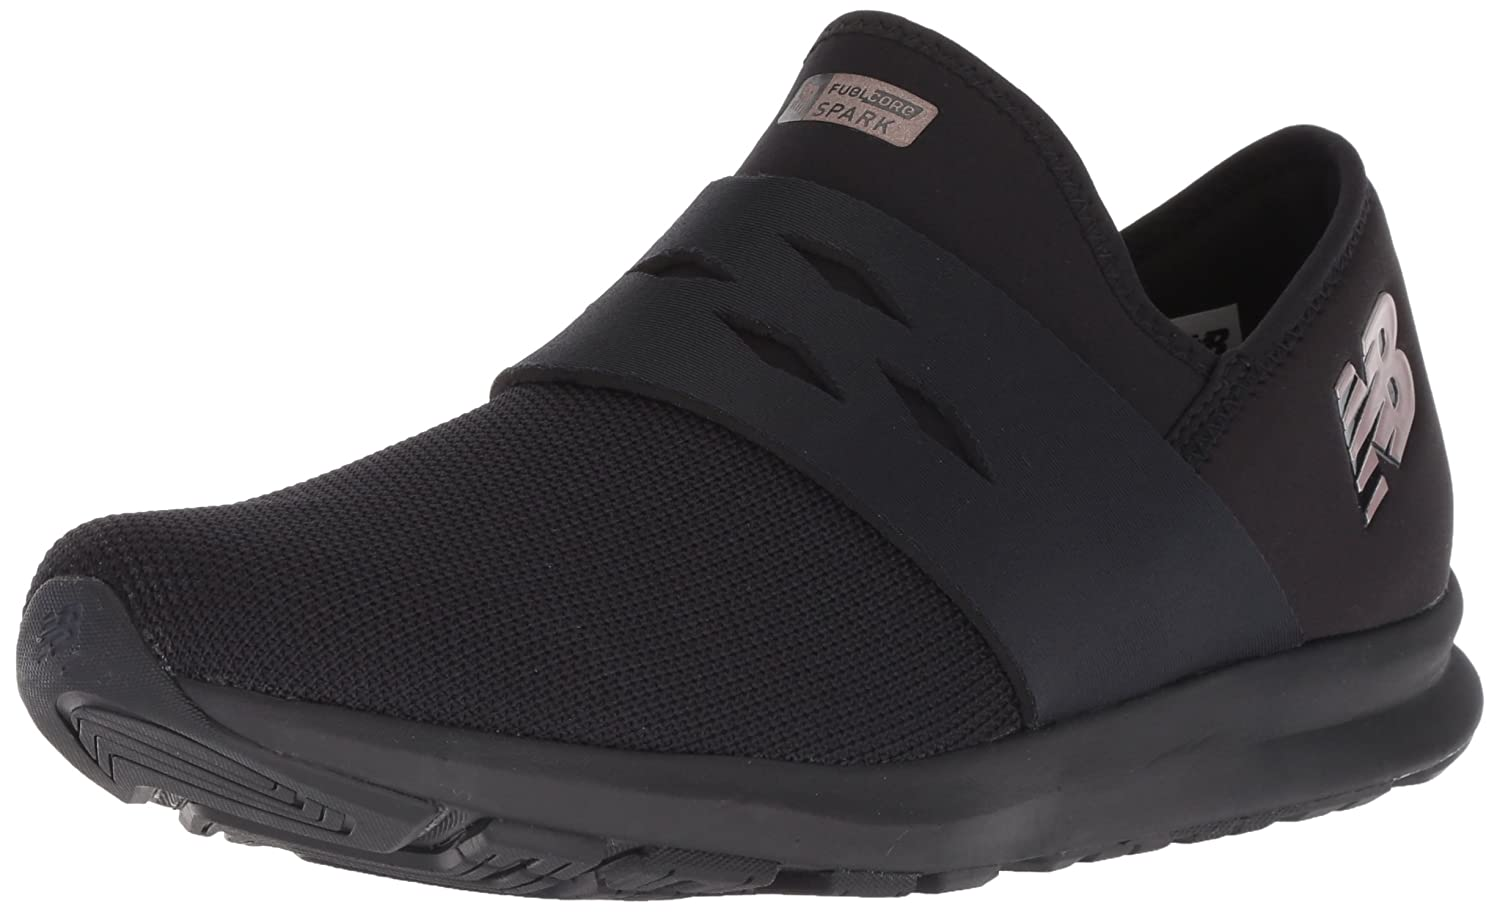 New Balance Women's SPK V1 FuelCore Cross Trainer B075R6VH72 8.5 B(M) US|Black/Black